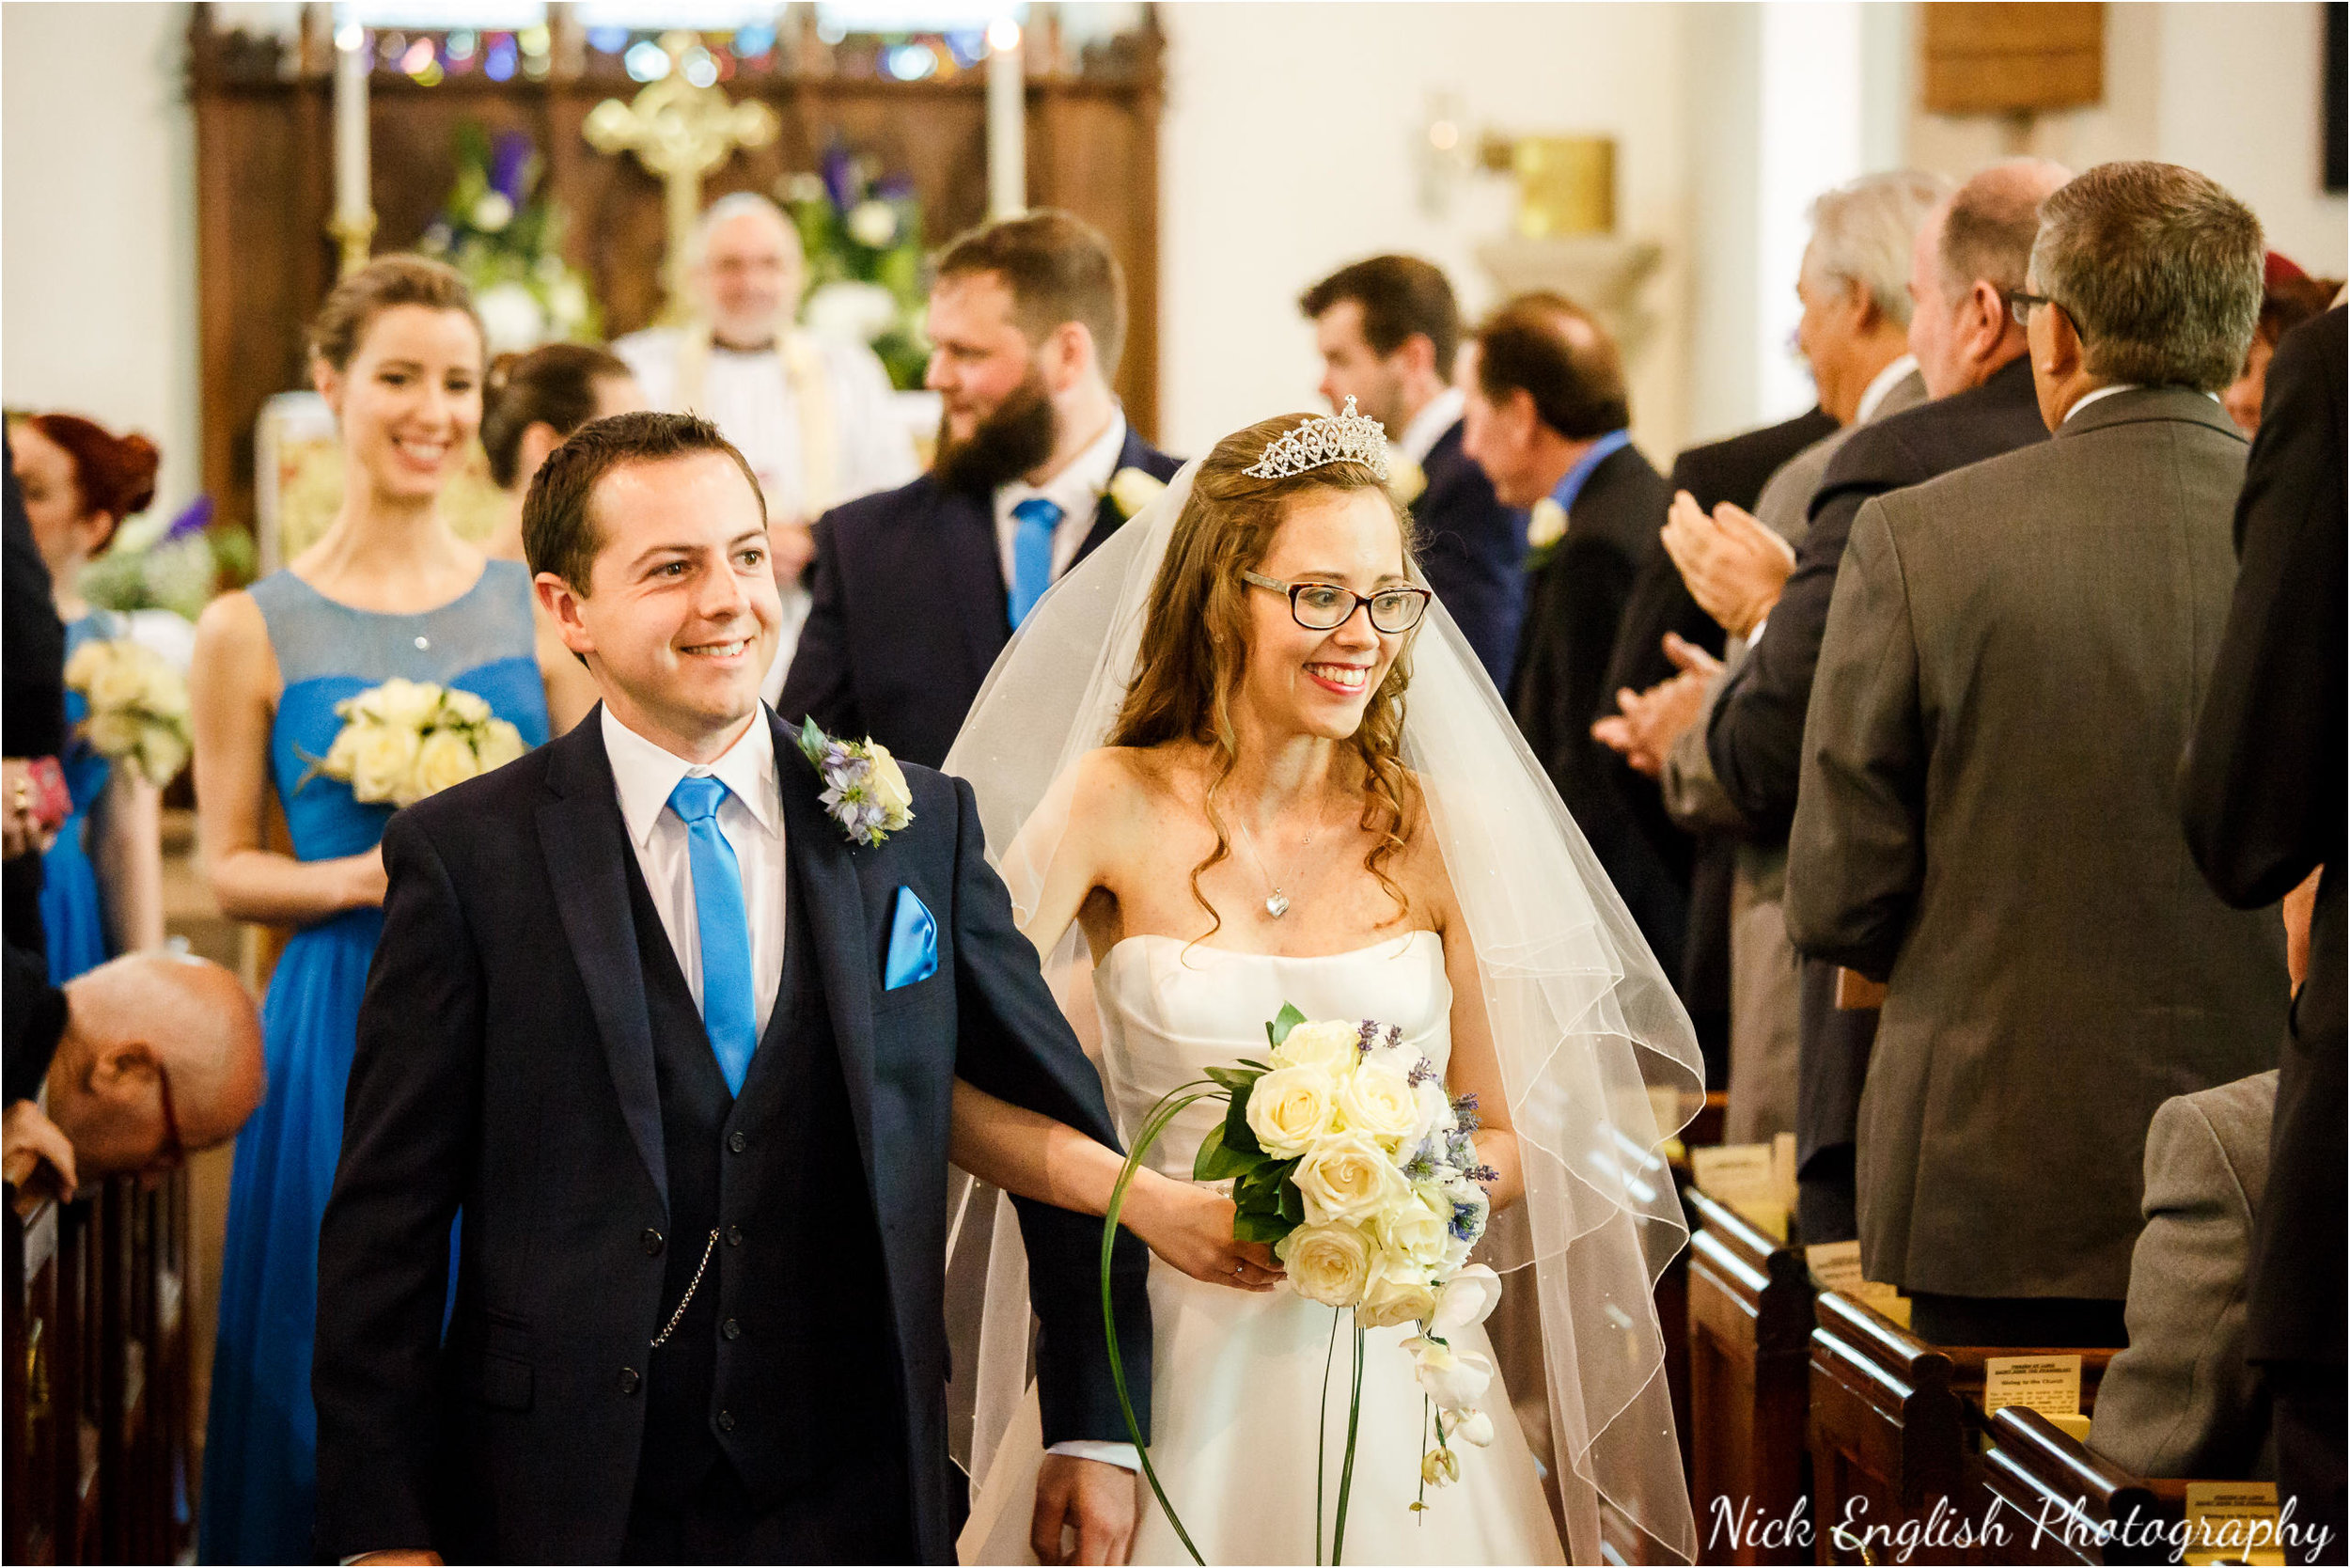 Derek Wright Georgina Wedding Photographs 91.jpg